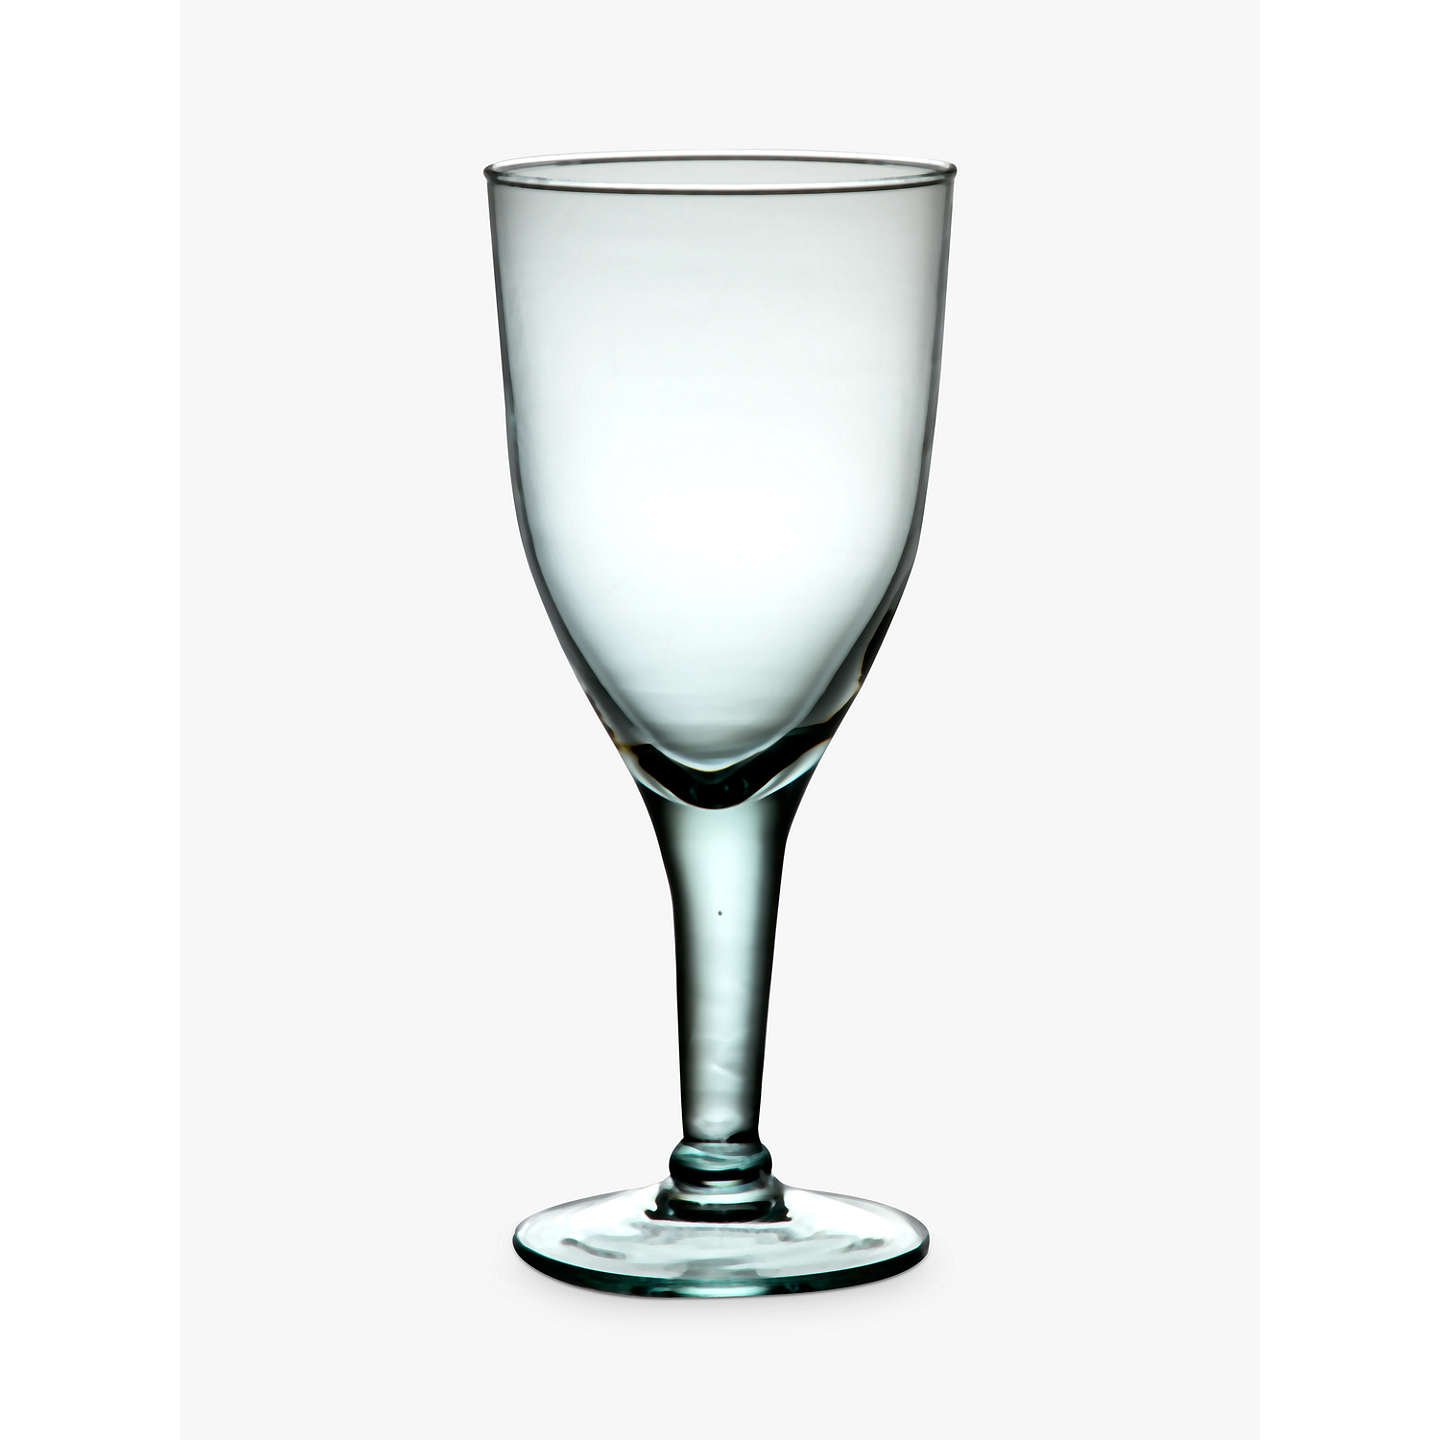 john lewis recycled wine glass 420ml clear at john lewis. Black Bedroom Furniture Sets. Home Design Ideas